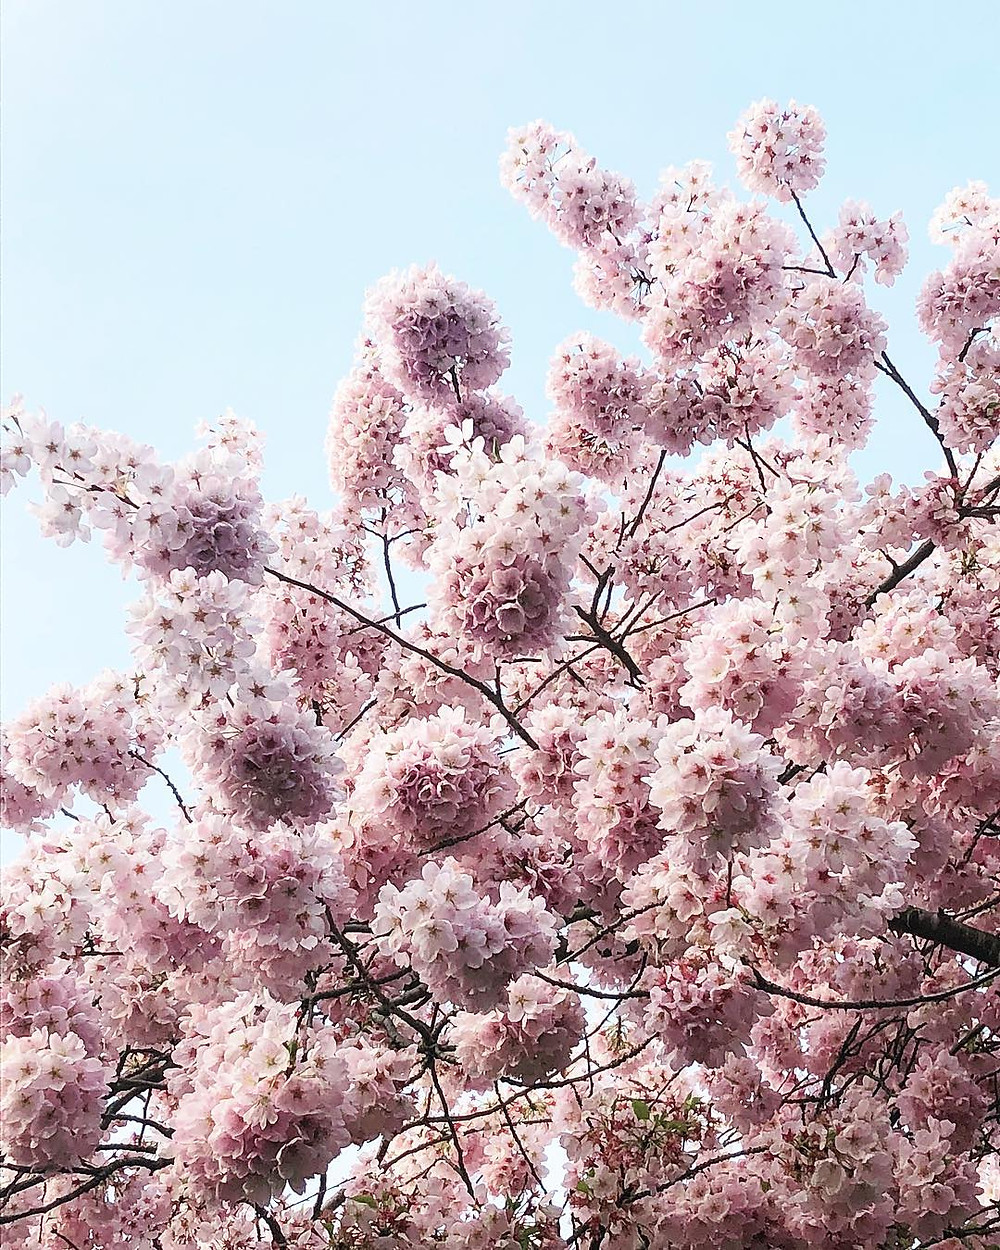 Cherry blossom trees in the spring with a blue sky background